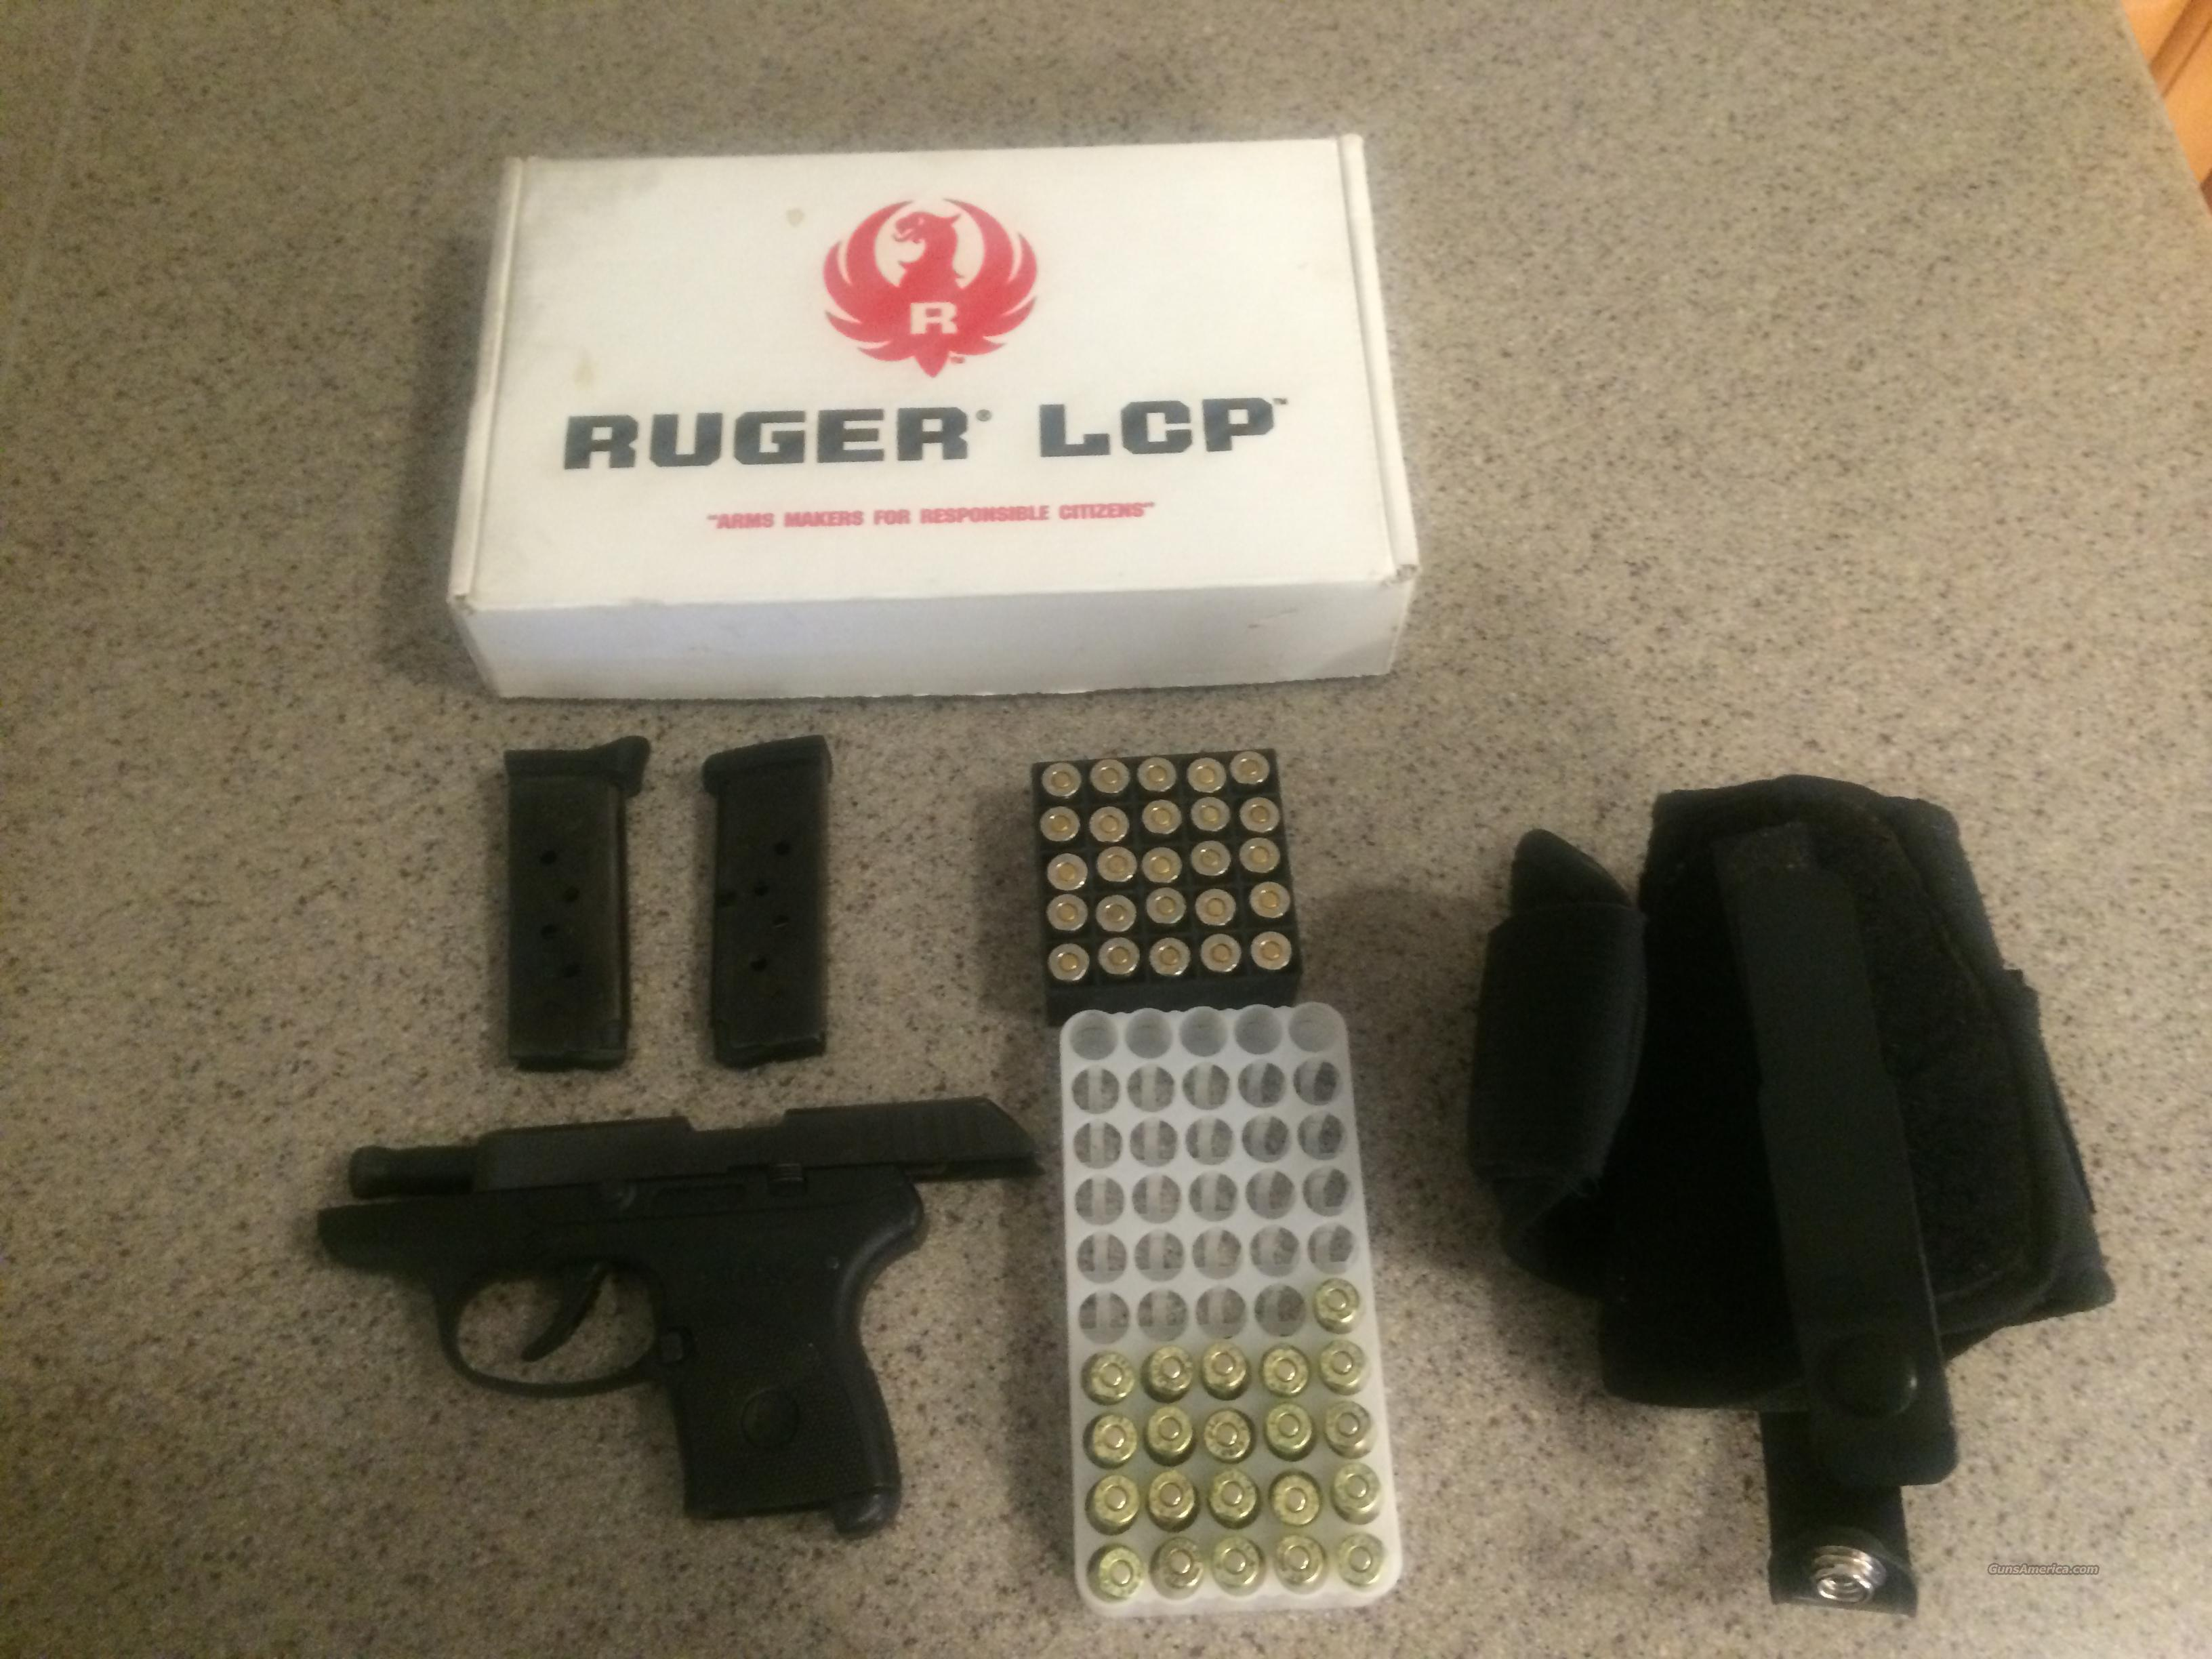 Ruger LCP with ammo and ankle holster  Guns > Pistols > Ruger Semi-Auto Pistols > LCP